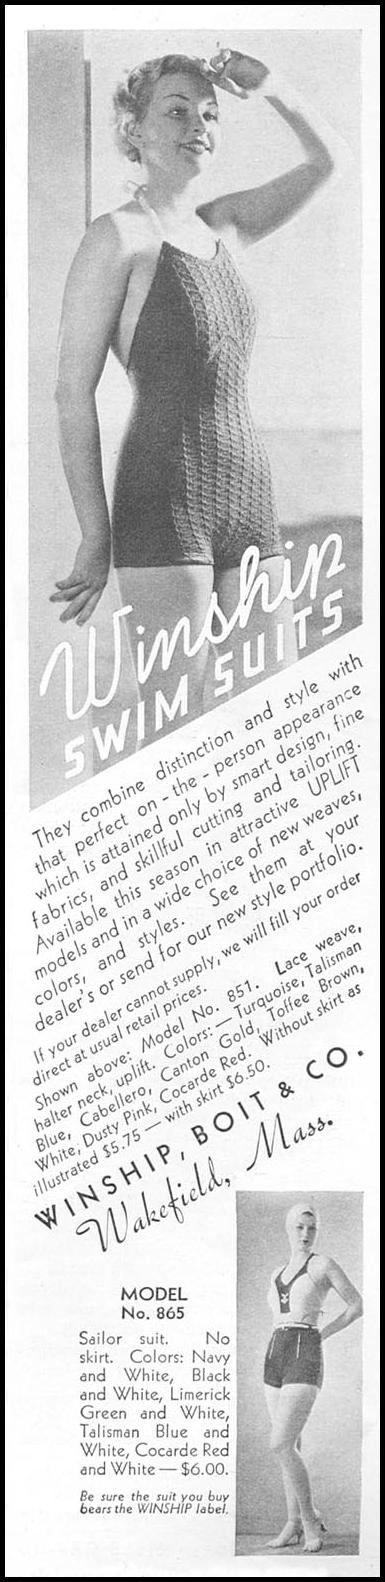 WINSHIP SWIM SUITS